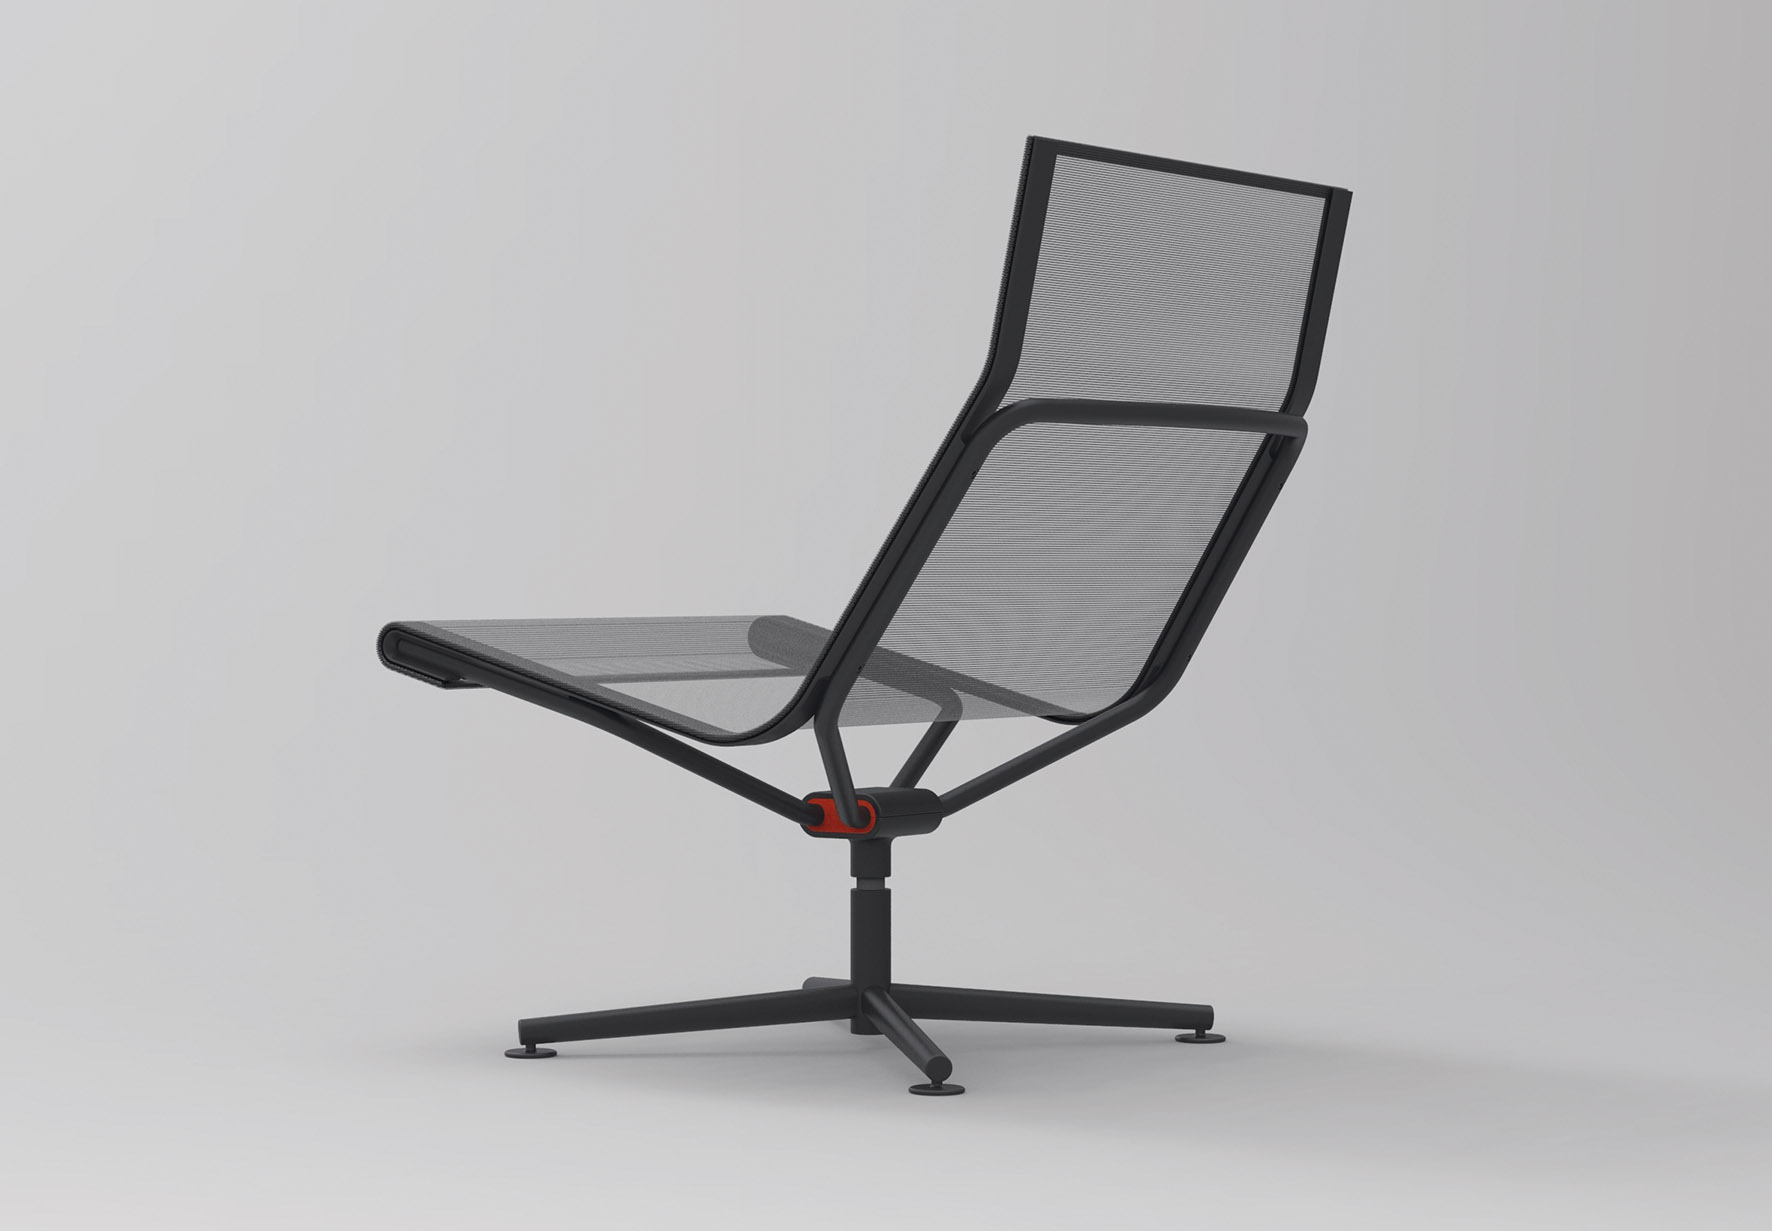 The lounge chair variant of Stefan Diez's 'Dondolo D2' for Wagner. Extraordinary simplicity.